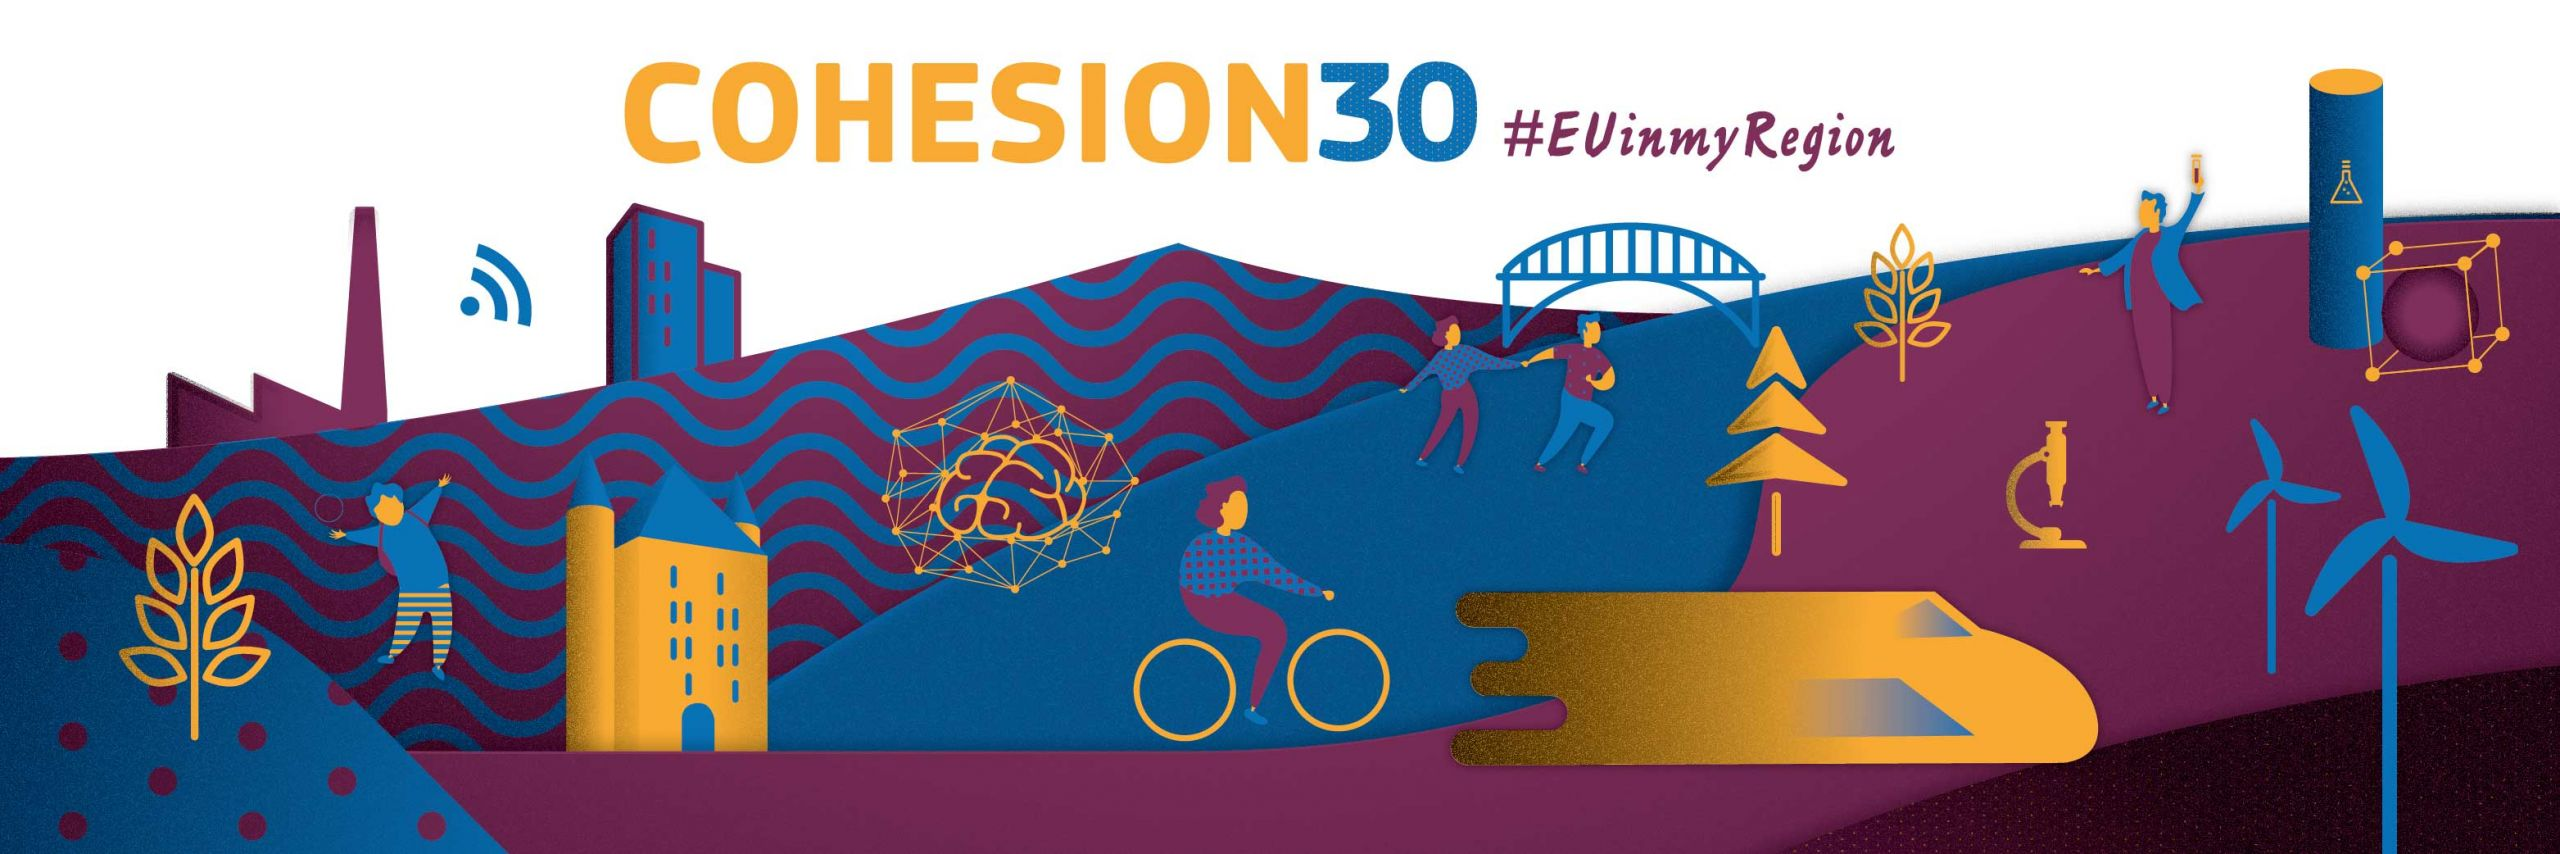 Cover for article 'The Six City Strategy Finland's flagship project for EU Cohesion 30'